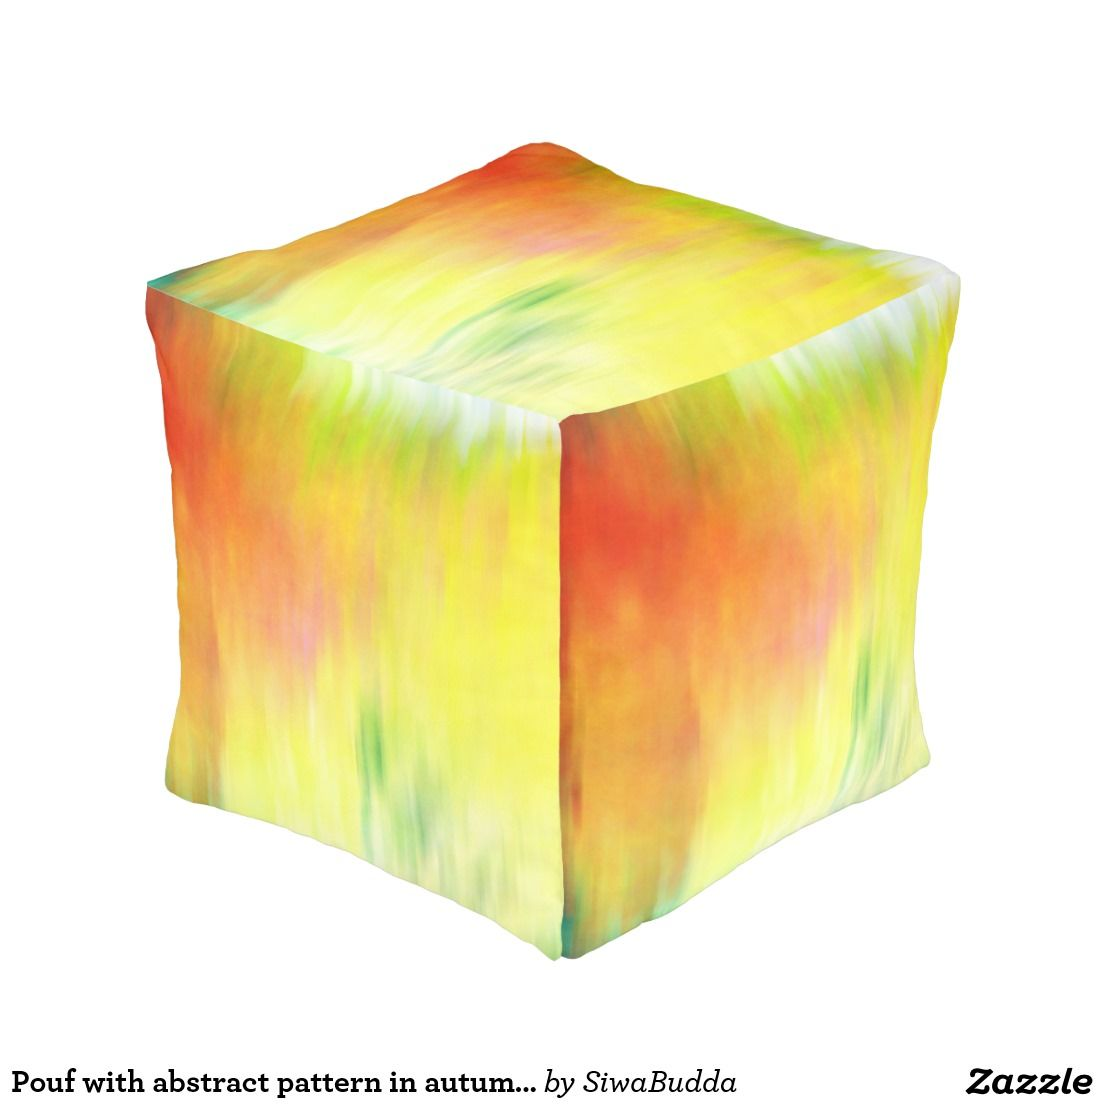 Pouf with abstract pattern in autumn colors